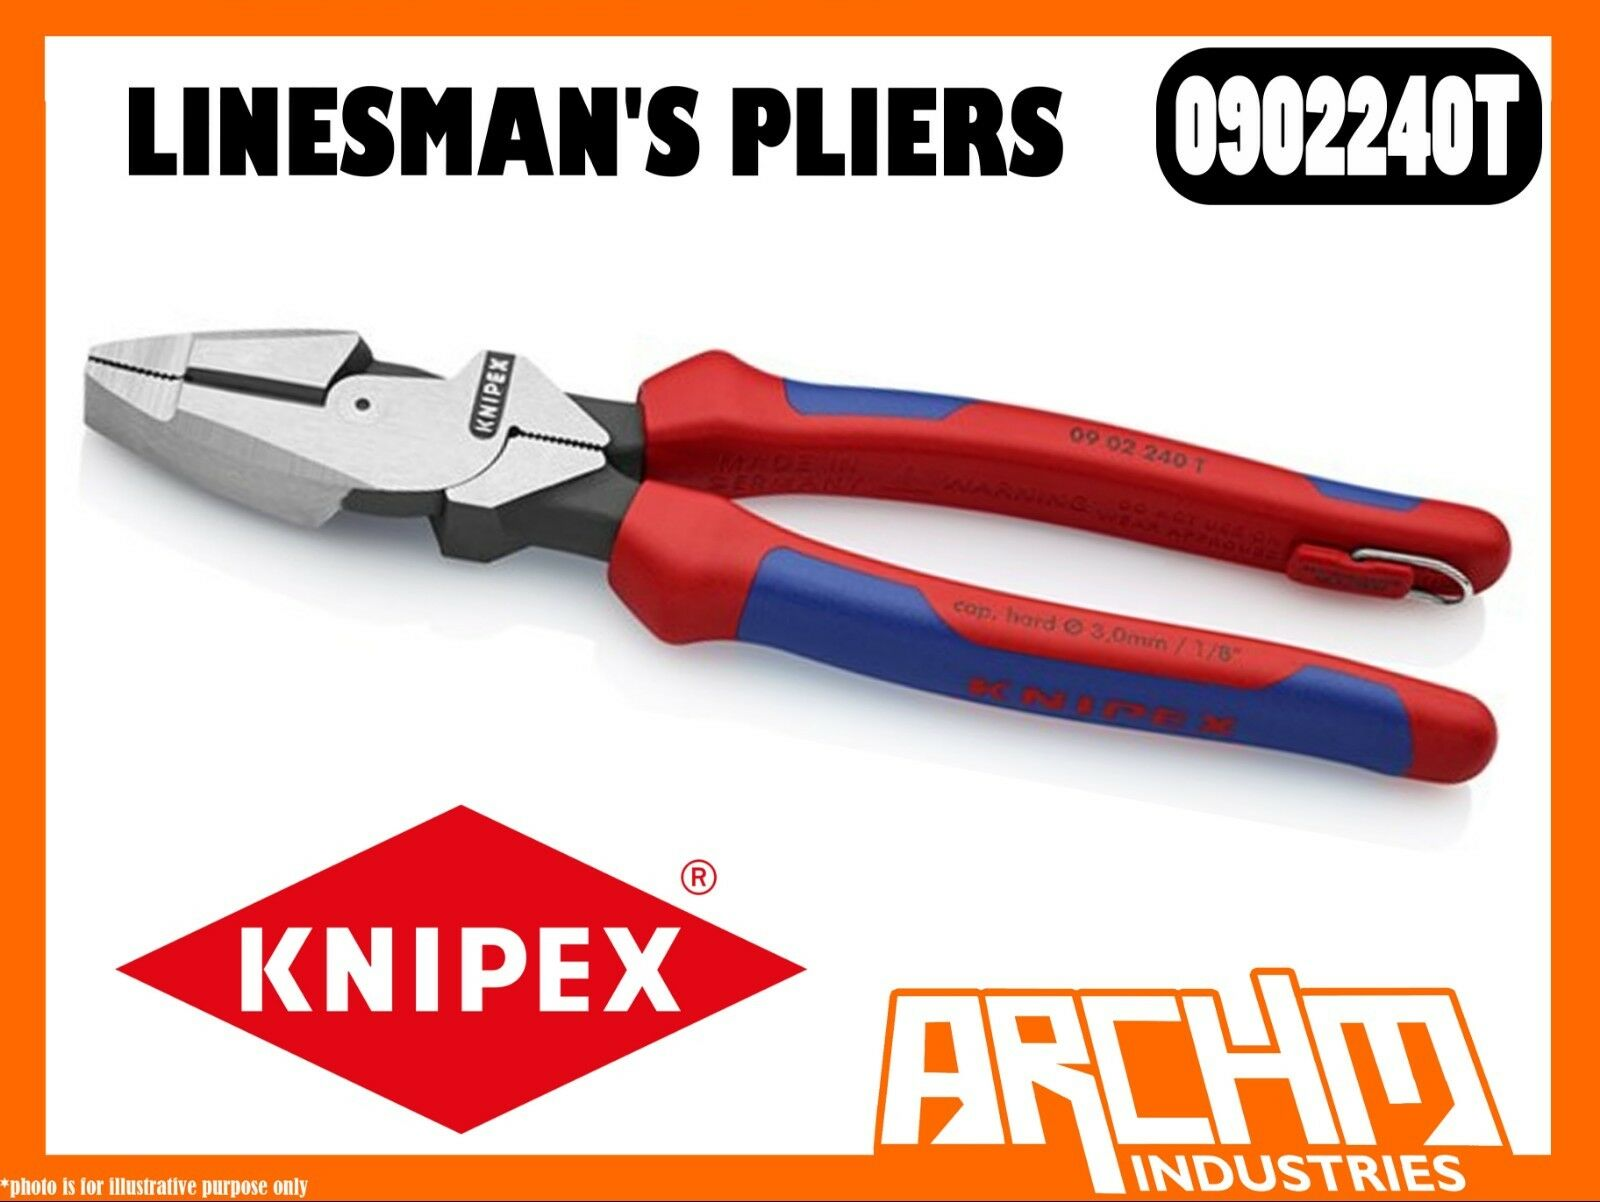 KNIPEX 0902240T - LINESMAN'S PLIERS - 240MM CUTTING EDGE HIGH TRANSMISSION RATIO